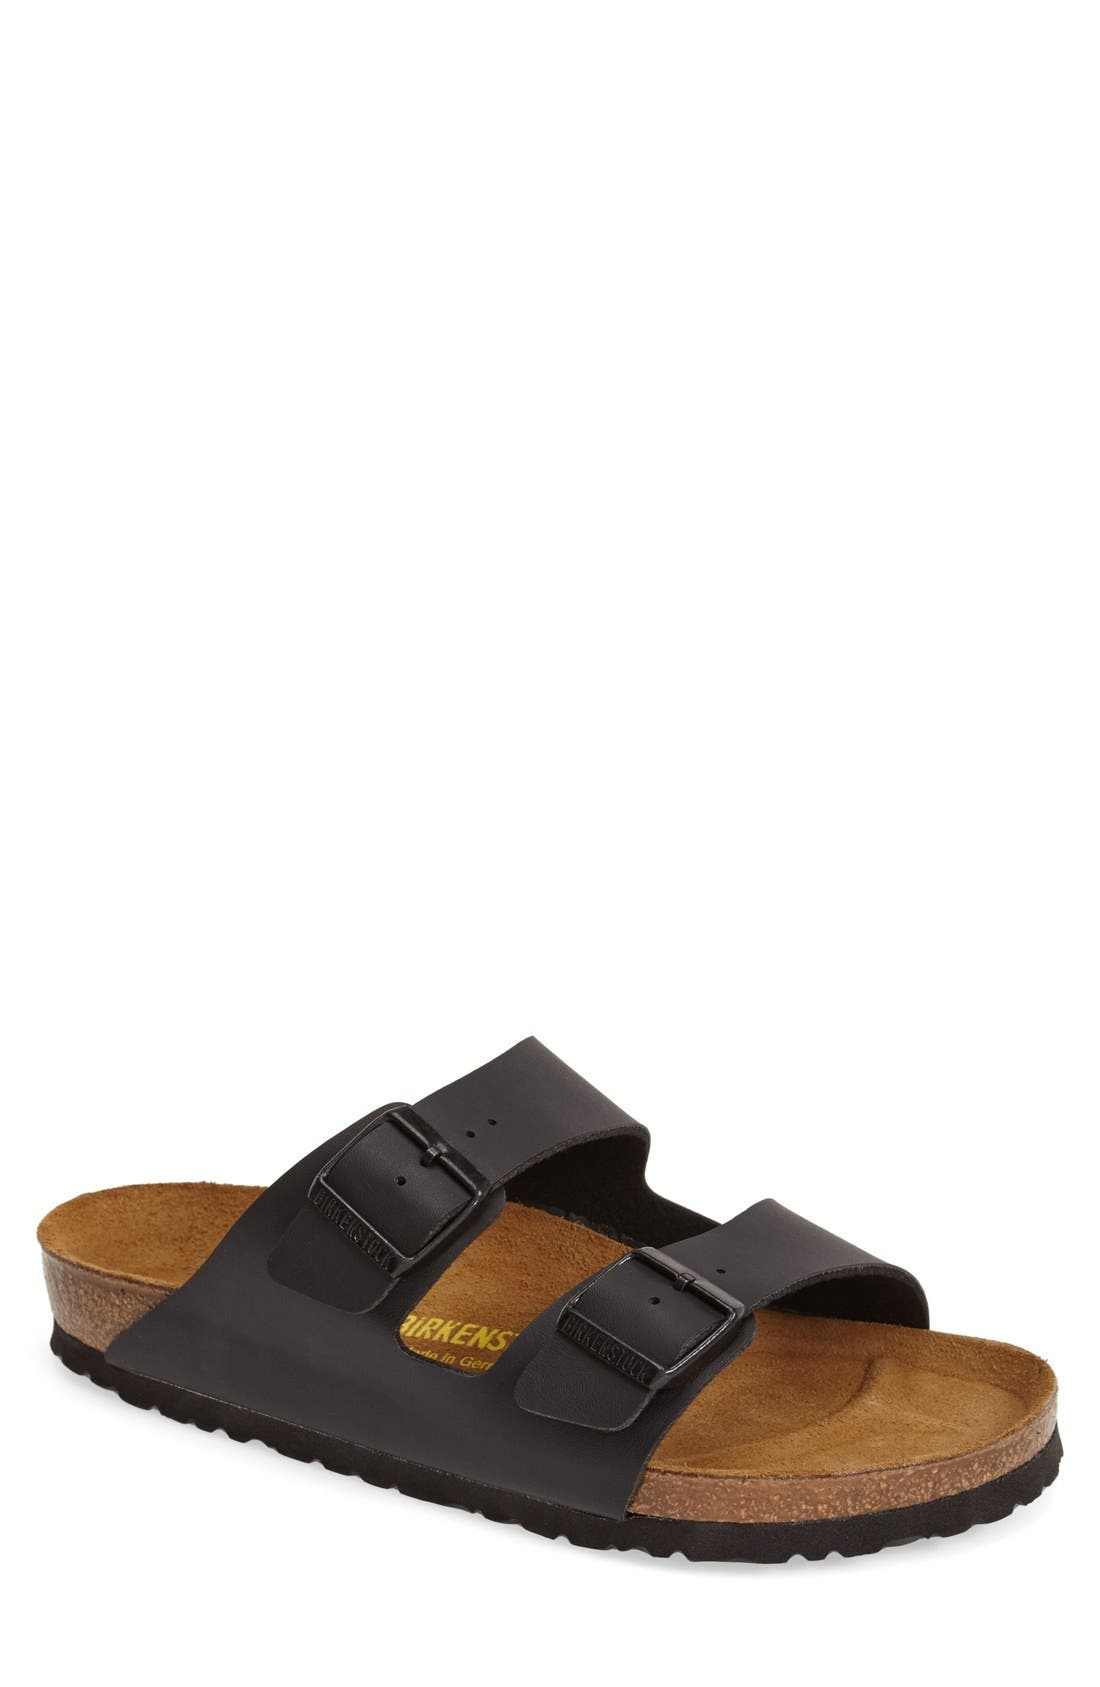 BIRKENSTOCK, 'Arizona' Slide Sandal, Main thumbnail 1, color, BLACK